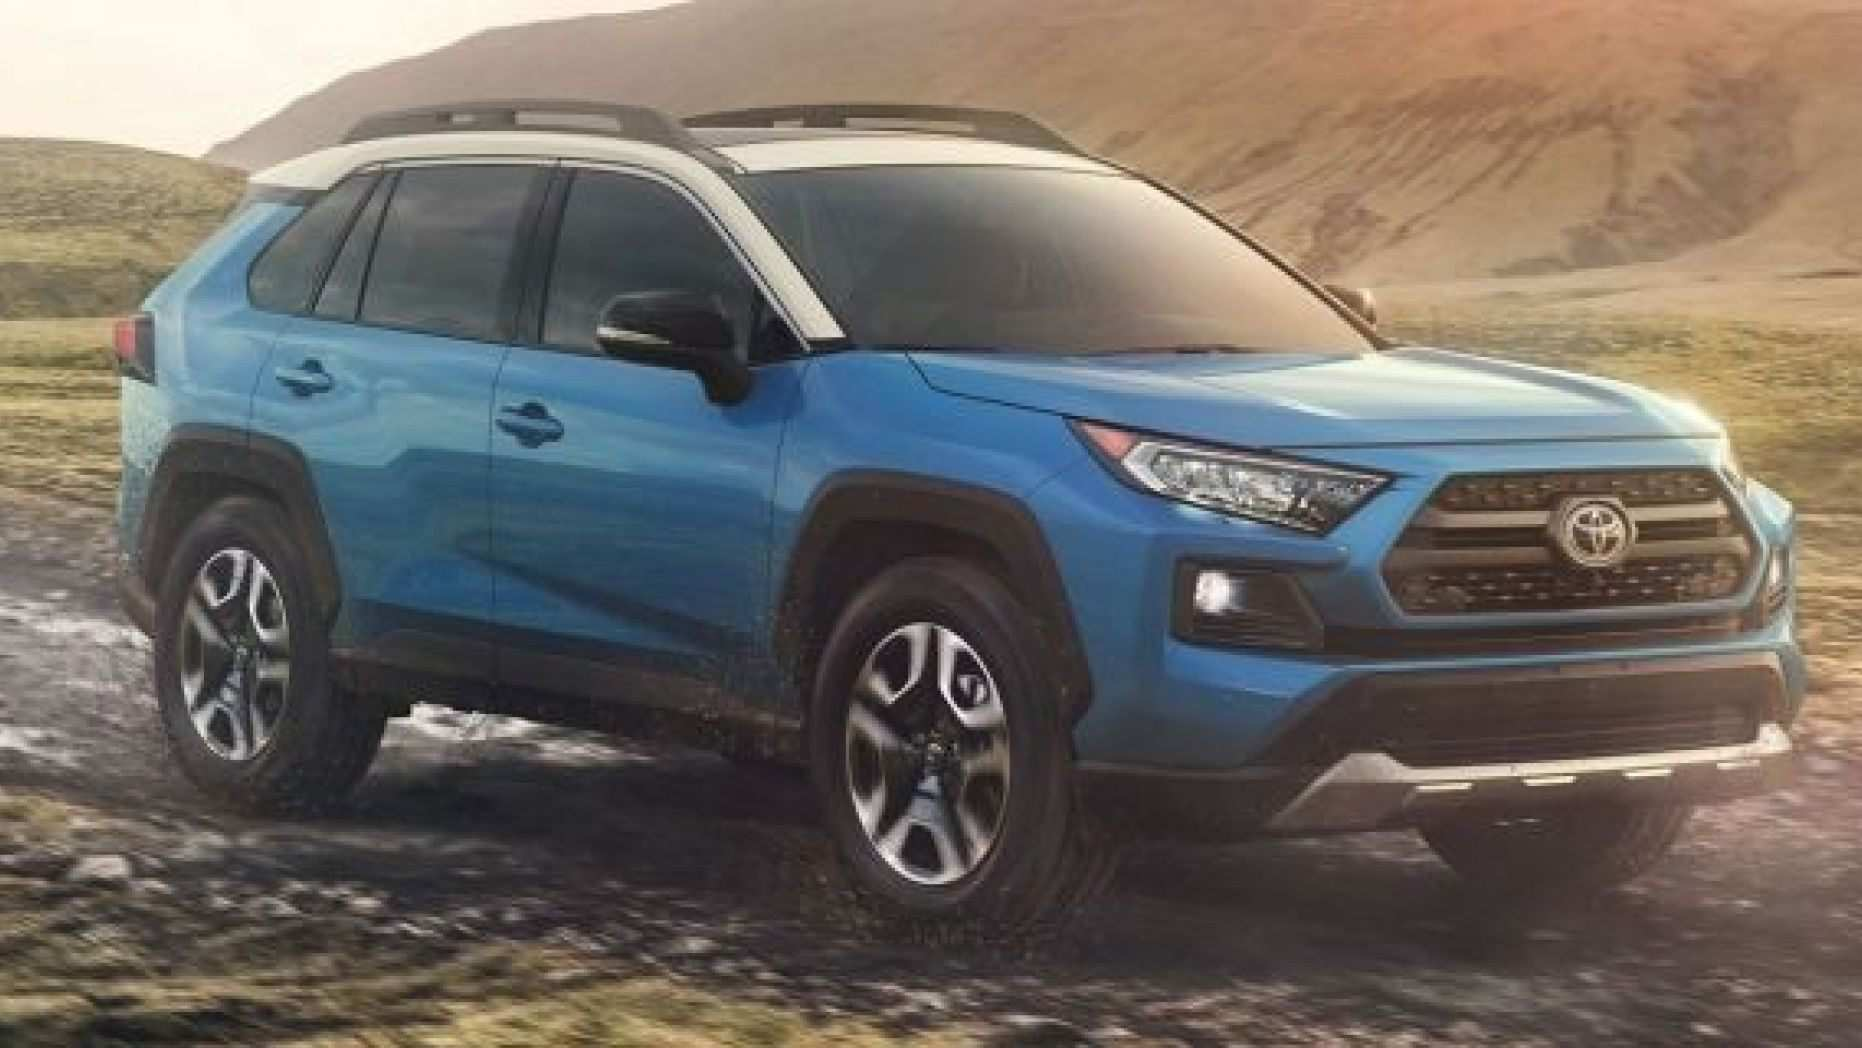 83 All New Best Toyota 2019 Rav4 Specs Price Picture with Best Toyota 2019 Rav4 Specs Price